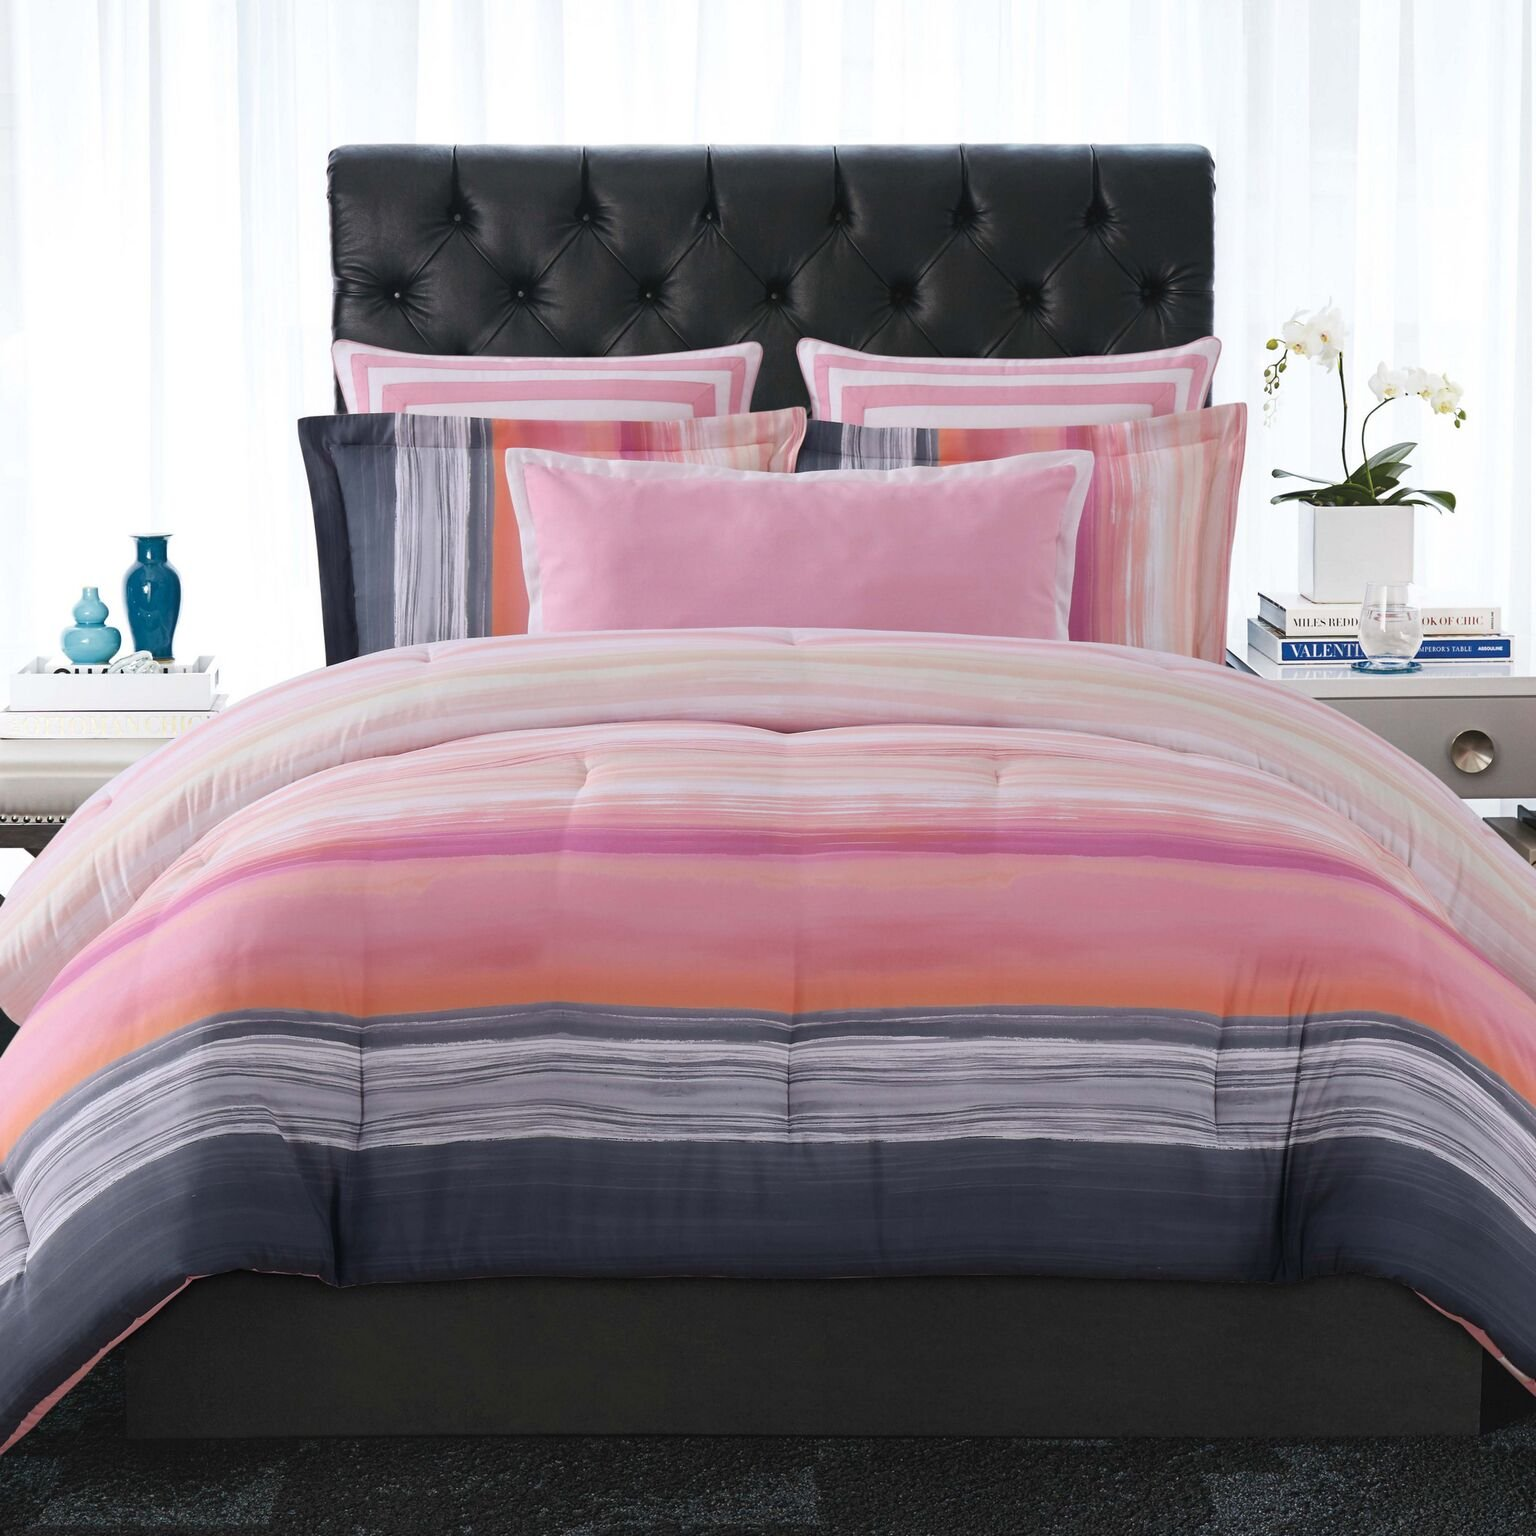 Christian Siriano Comforter Sunset Stripe, King, Pink, Orange and Grey